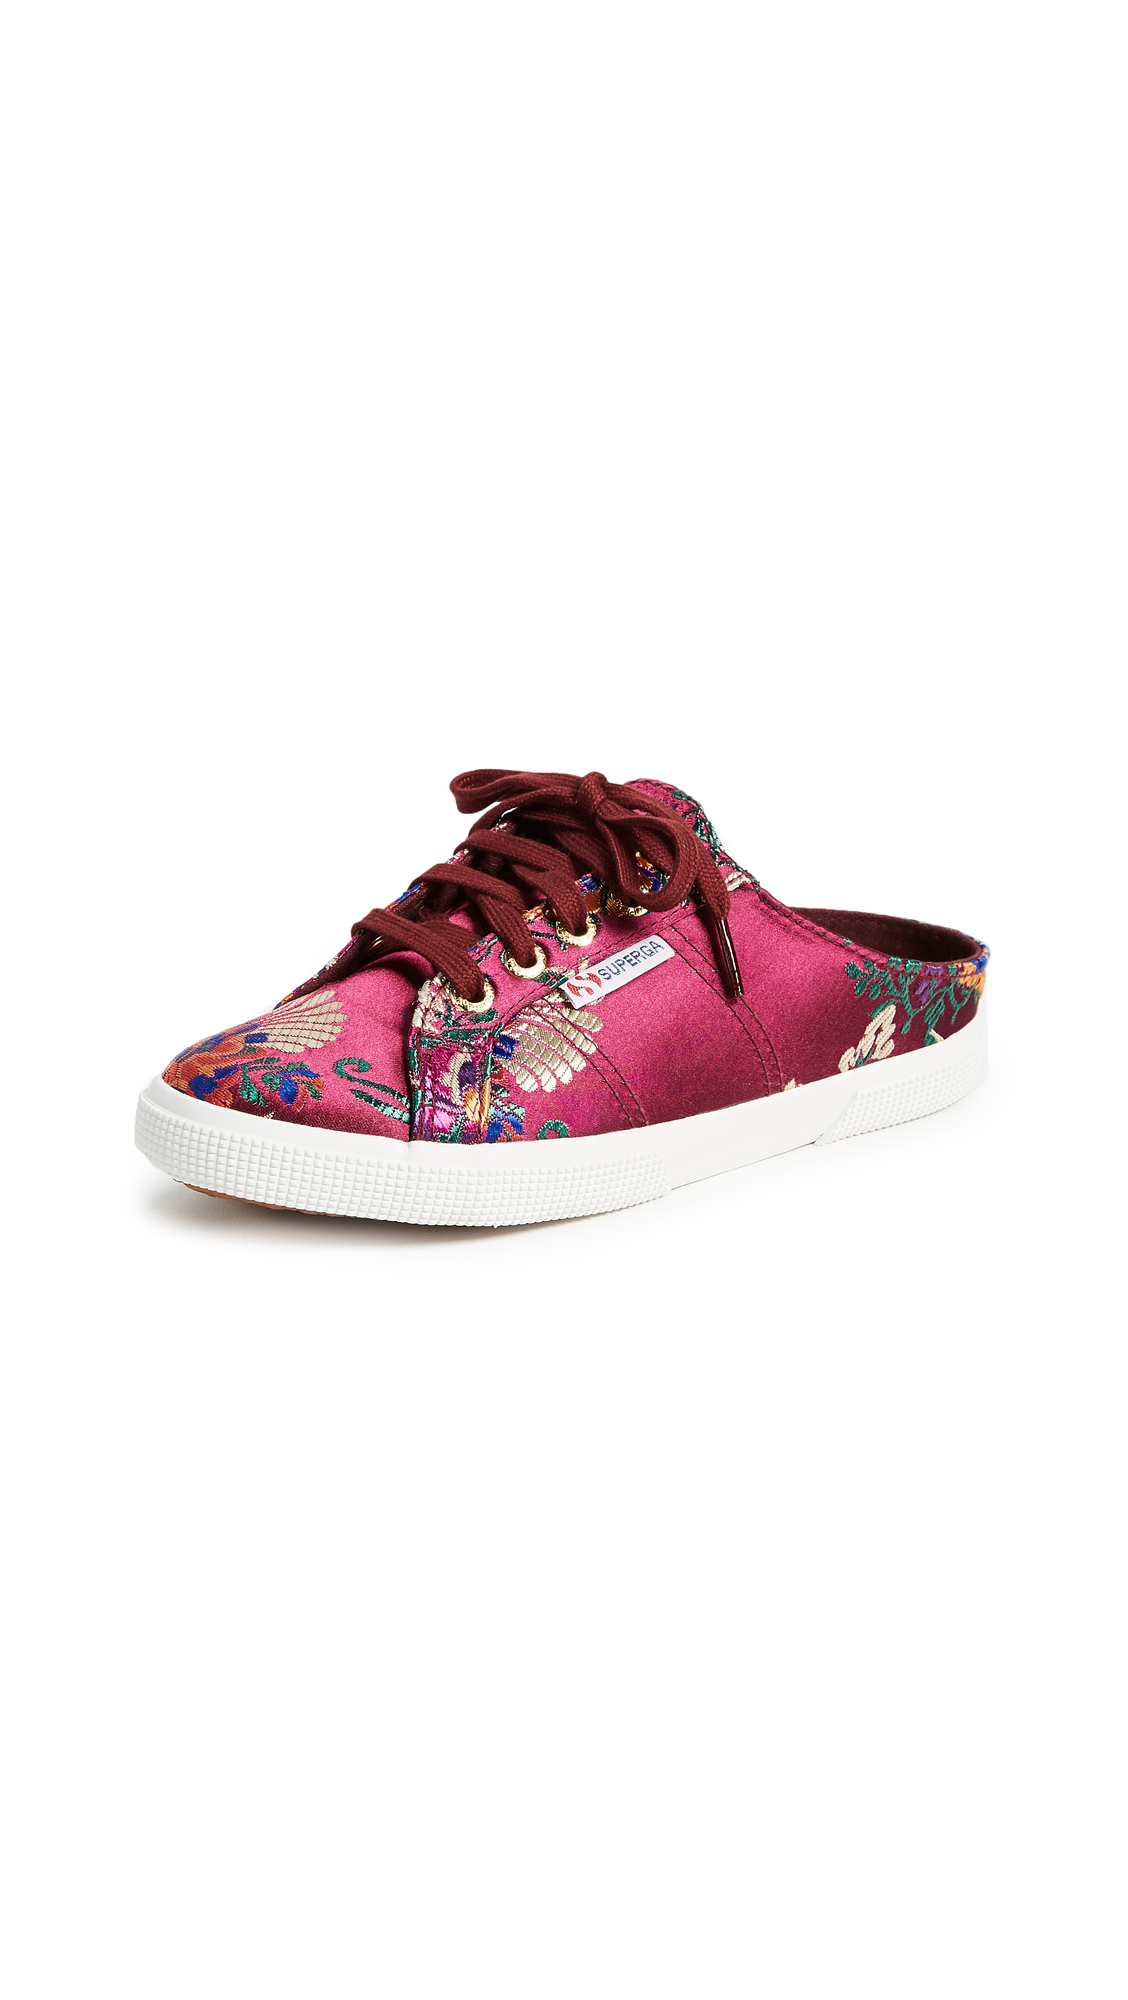 Superga 2288 Korelaw Brocade Mule Sneakers - Bordeaux